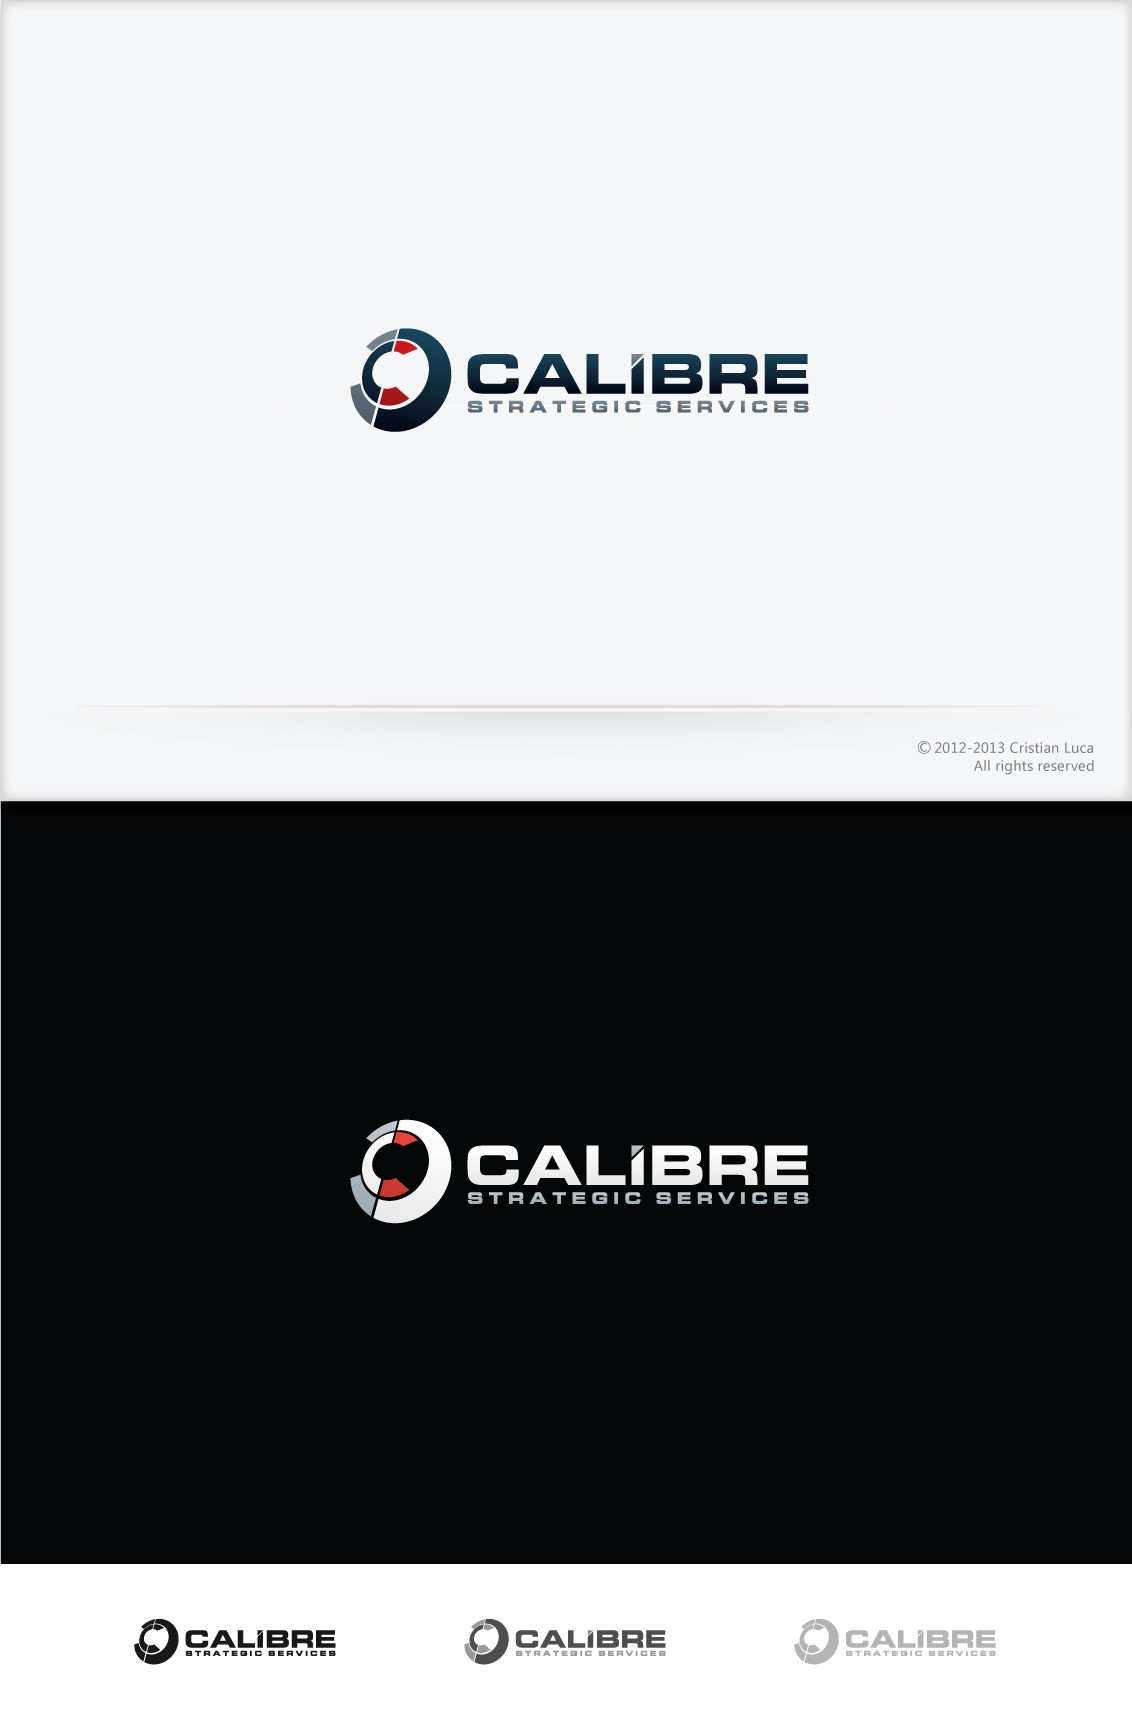 Help CALIBRE Strategic Services with a new logo